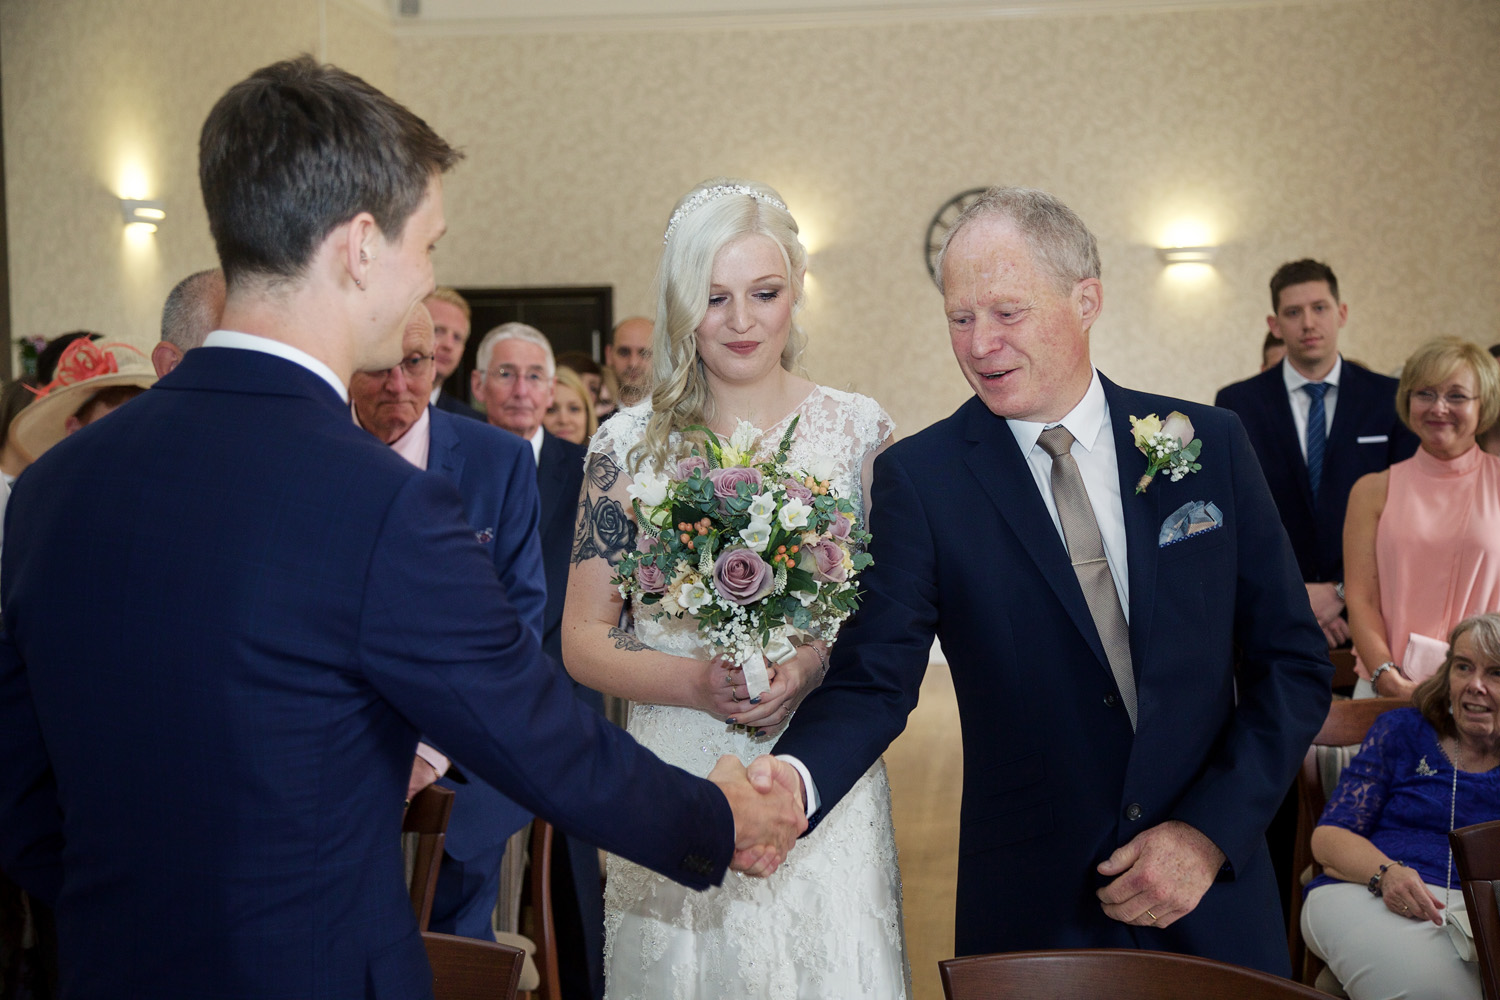 Easthampstead_Park_Wedding_Photographer_Bracknell_Berkshire_031.jpg